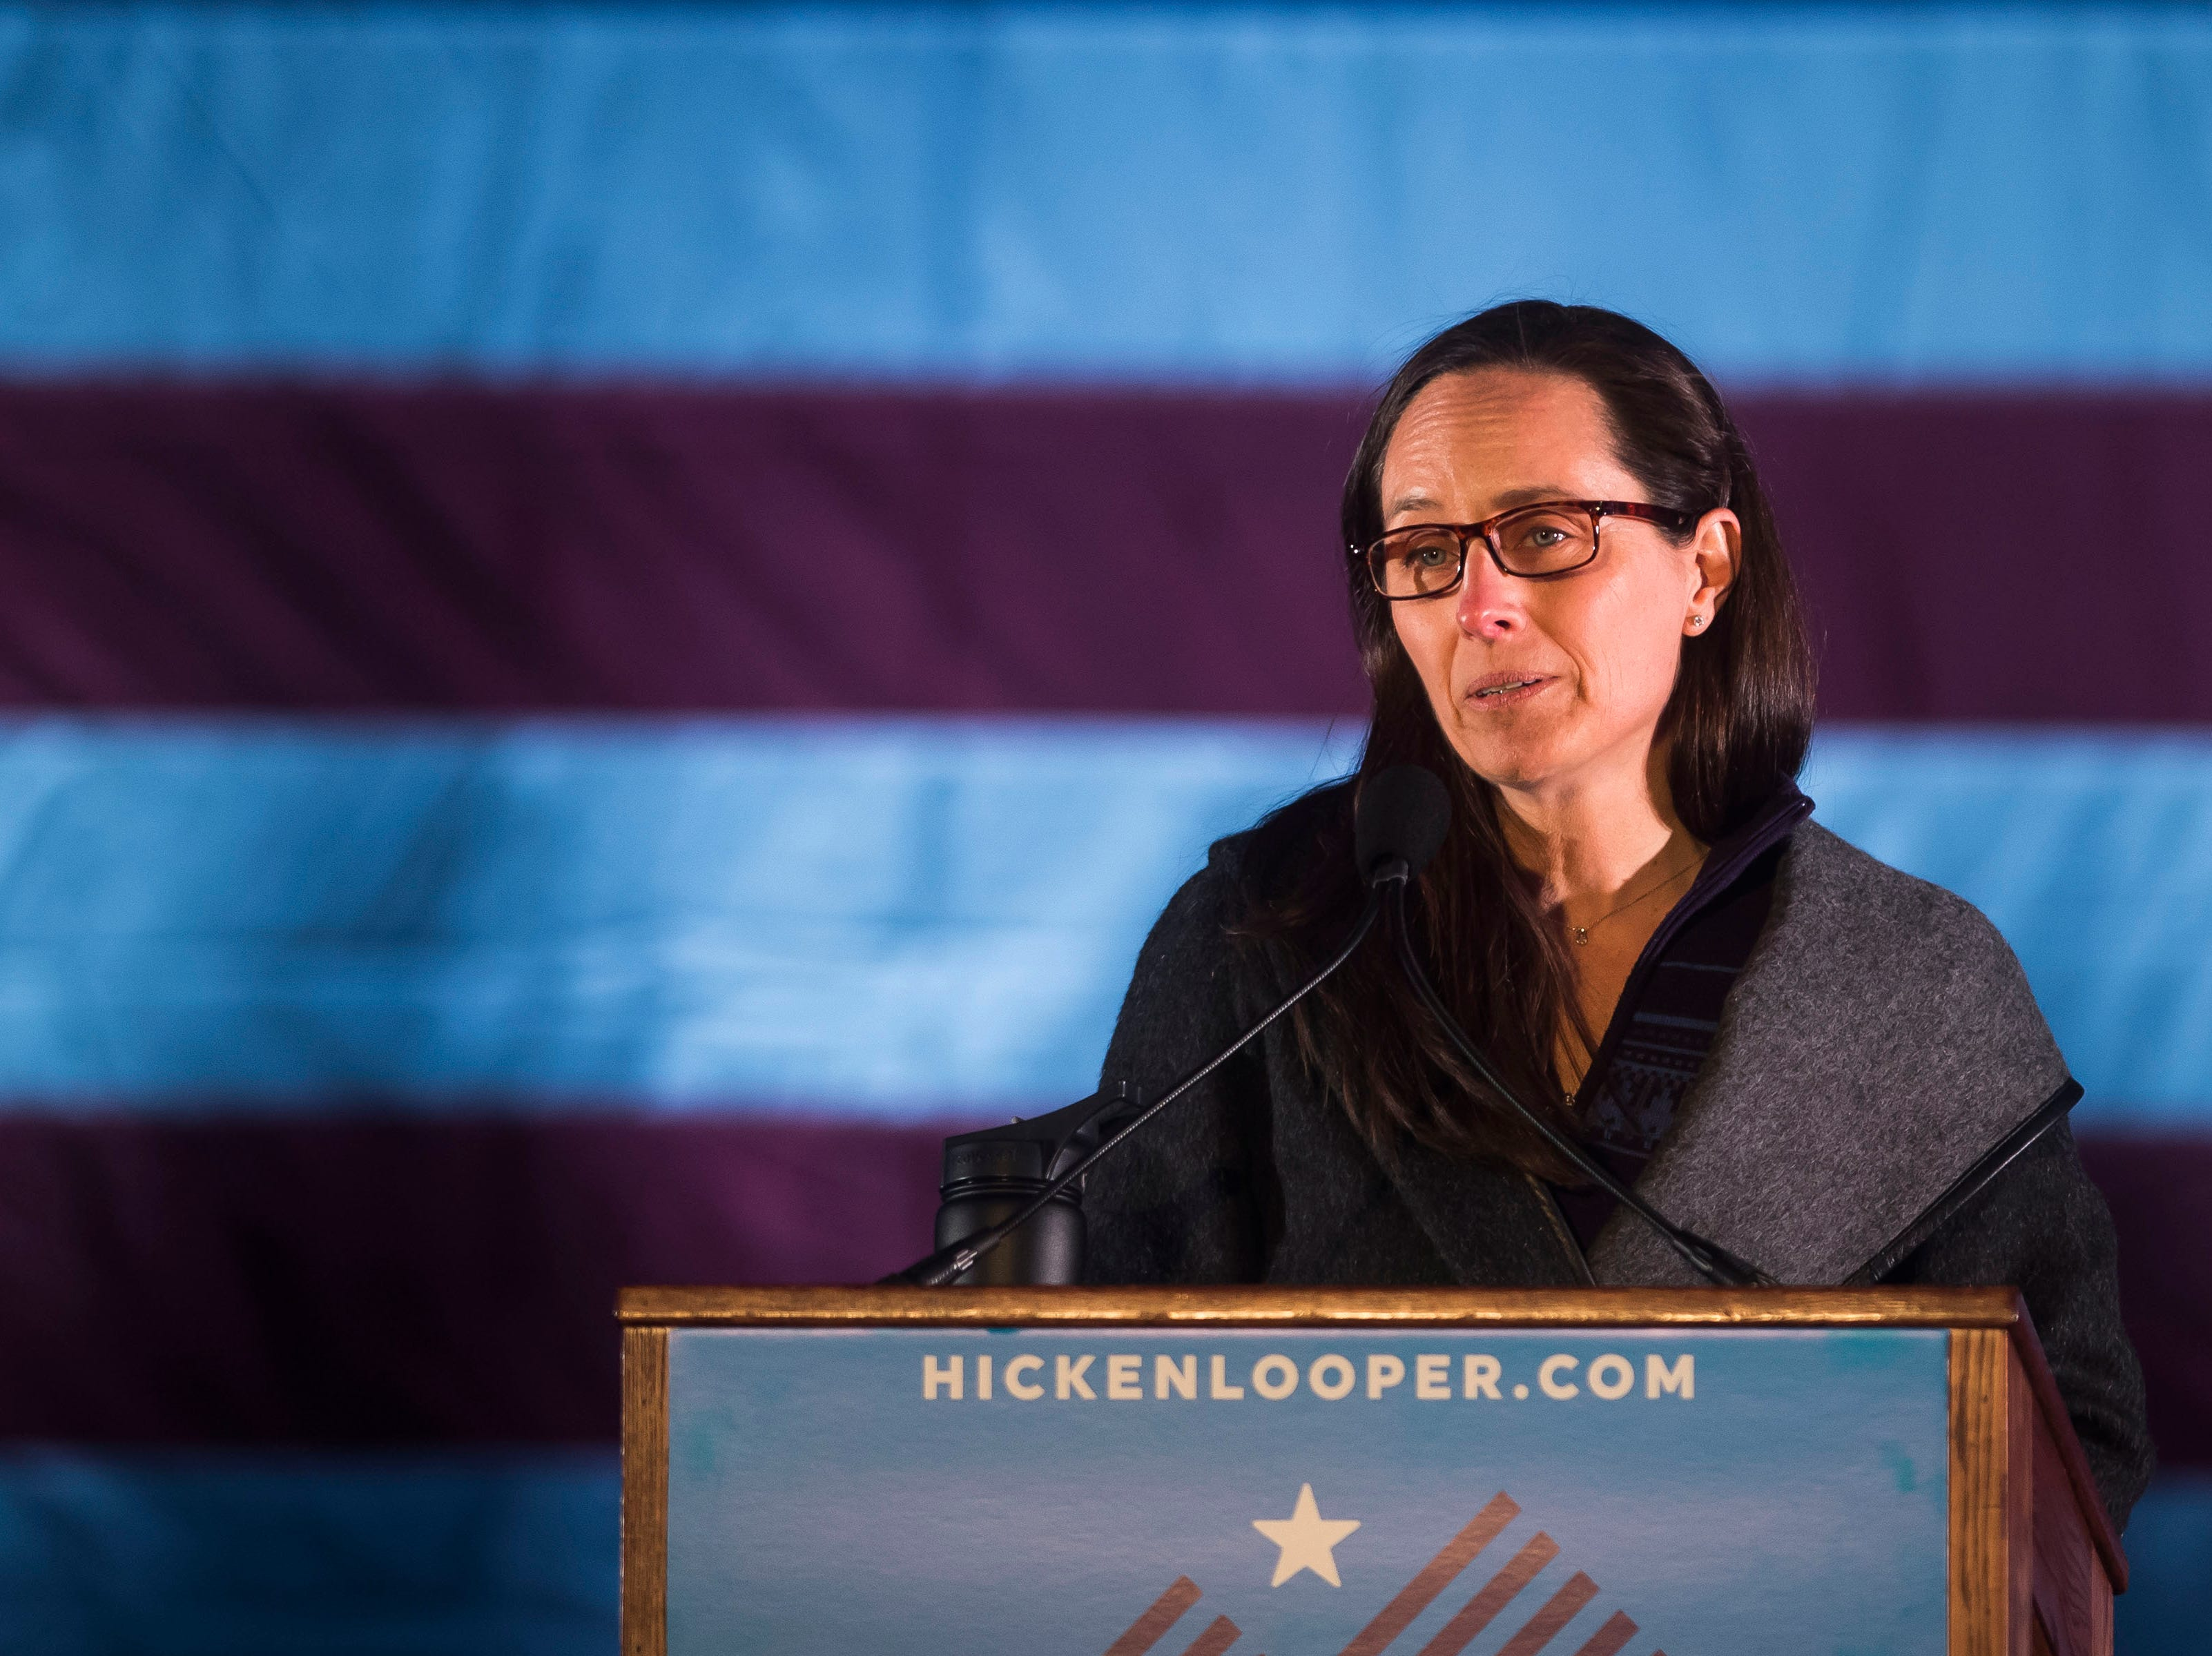 Former mayor of Jamestown, Colo., Tara Schoedinger speaks at the John Hickenlooper presidential campaign kick-off rally on Thursday, March 7, 2019, at the Greek Ampitheatre in Civic Center Park in Denver, Colo.